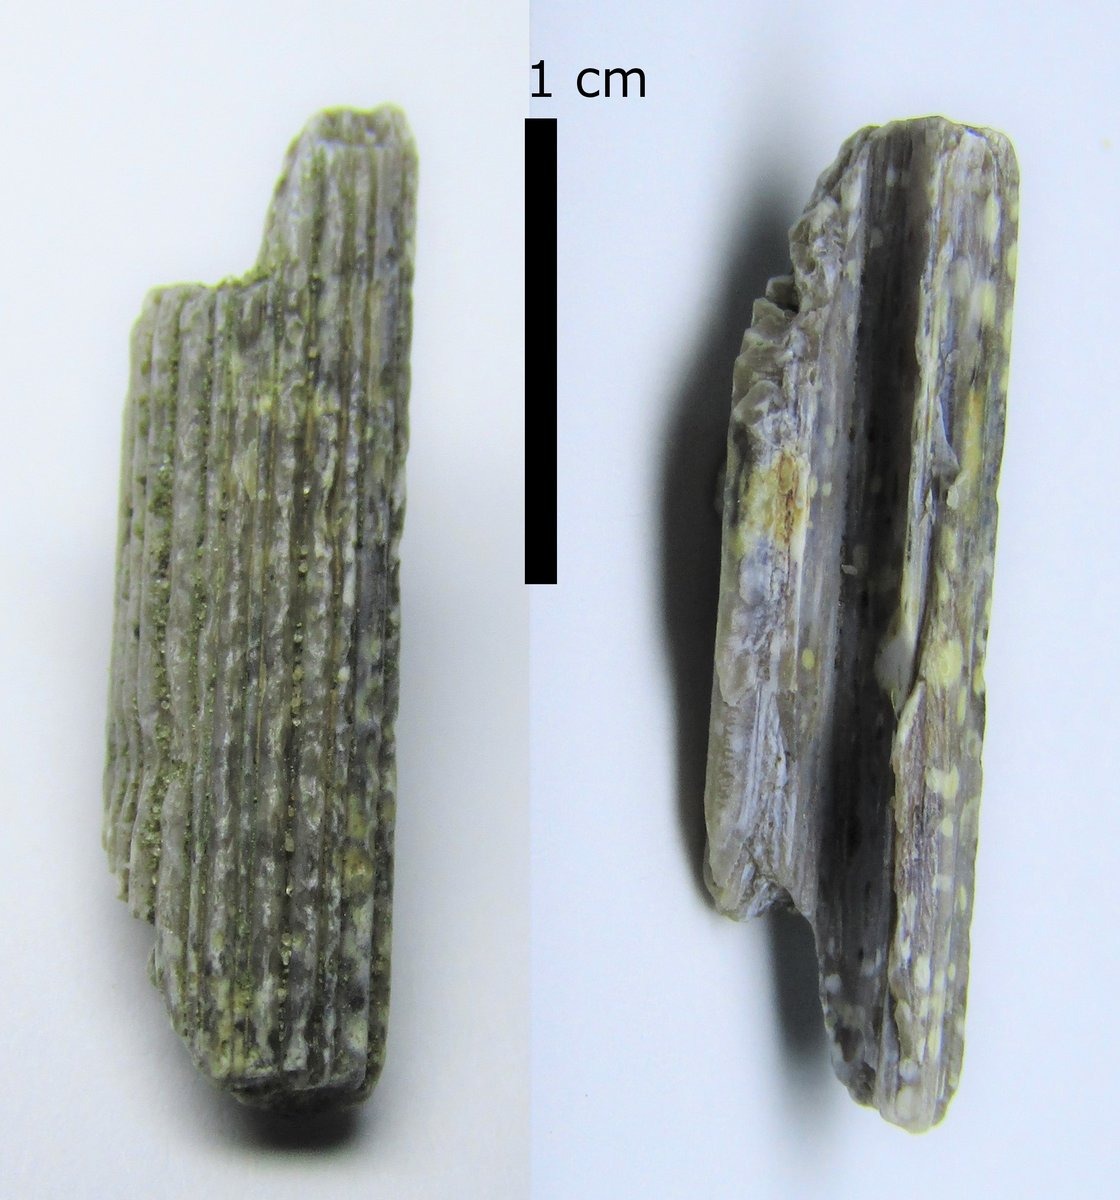 Cylindracanthus rostrum fragment